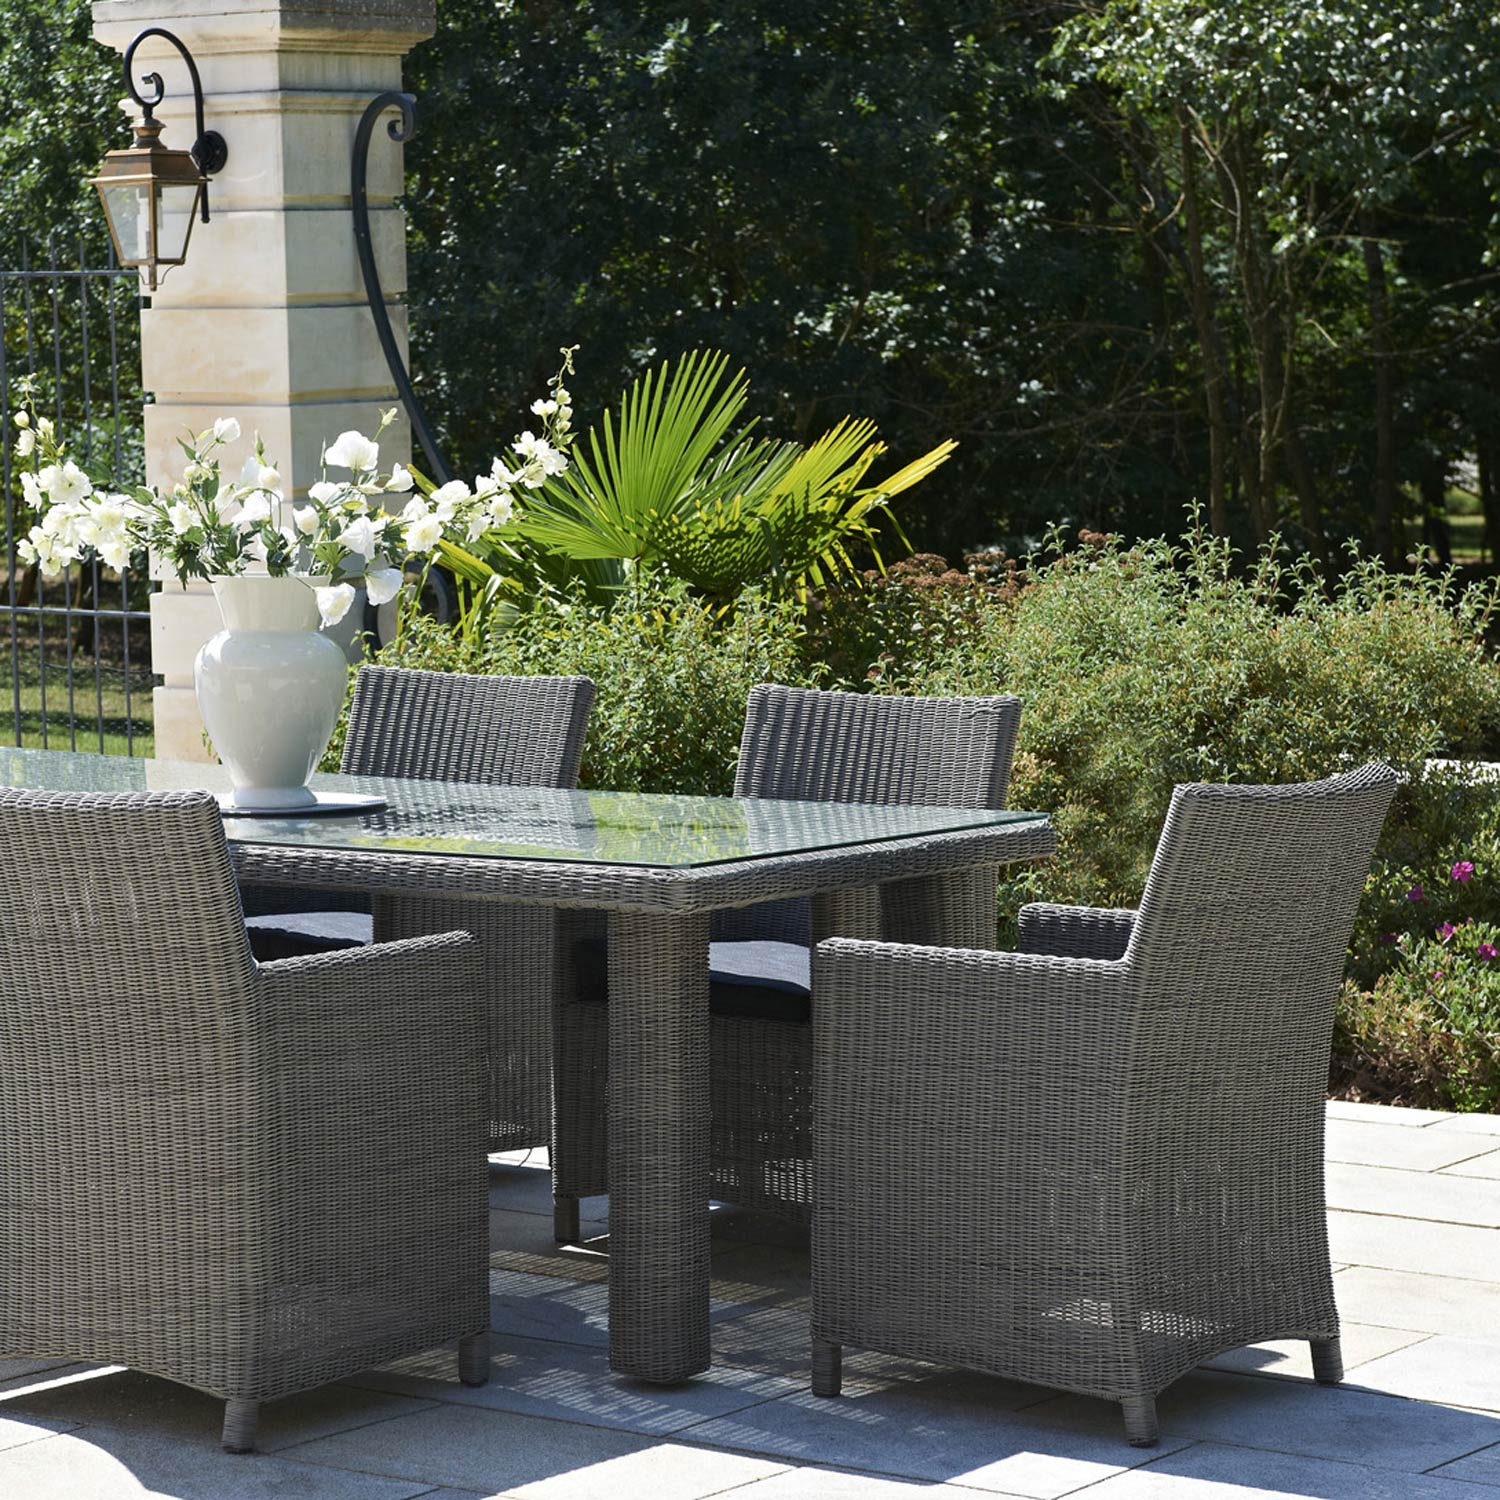 Salon de jardin haussman r sine tress e gris chin 1 table - Salon de jardin leroy merlin resine ...